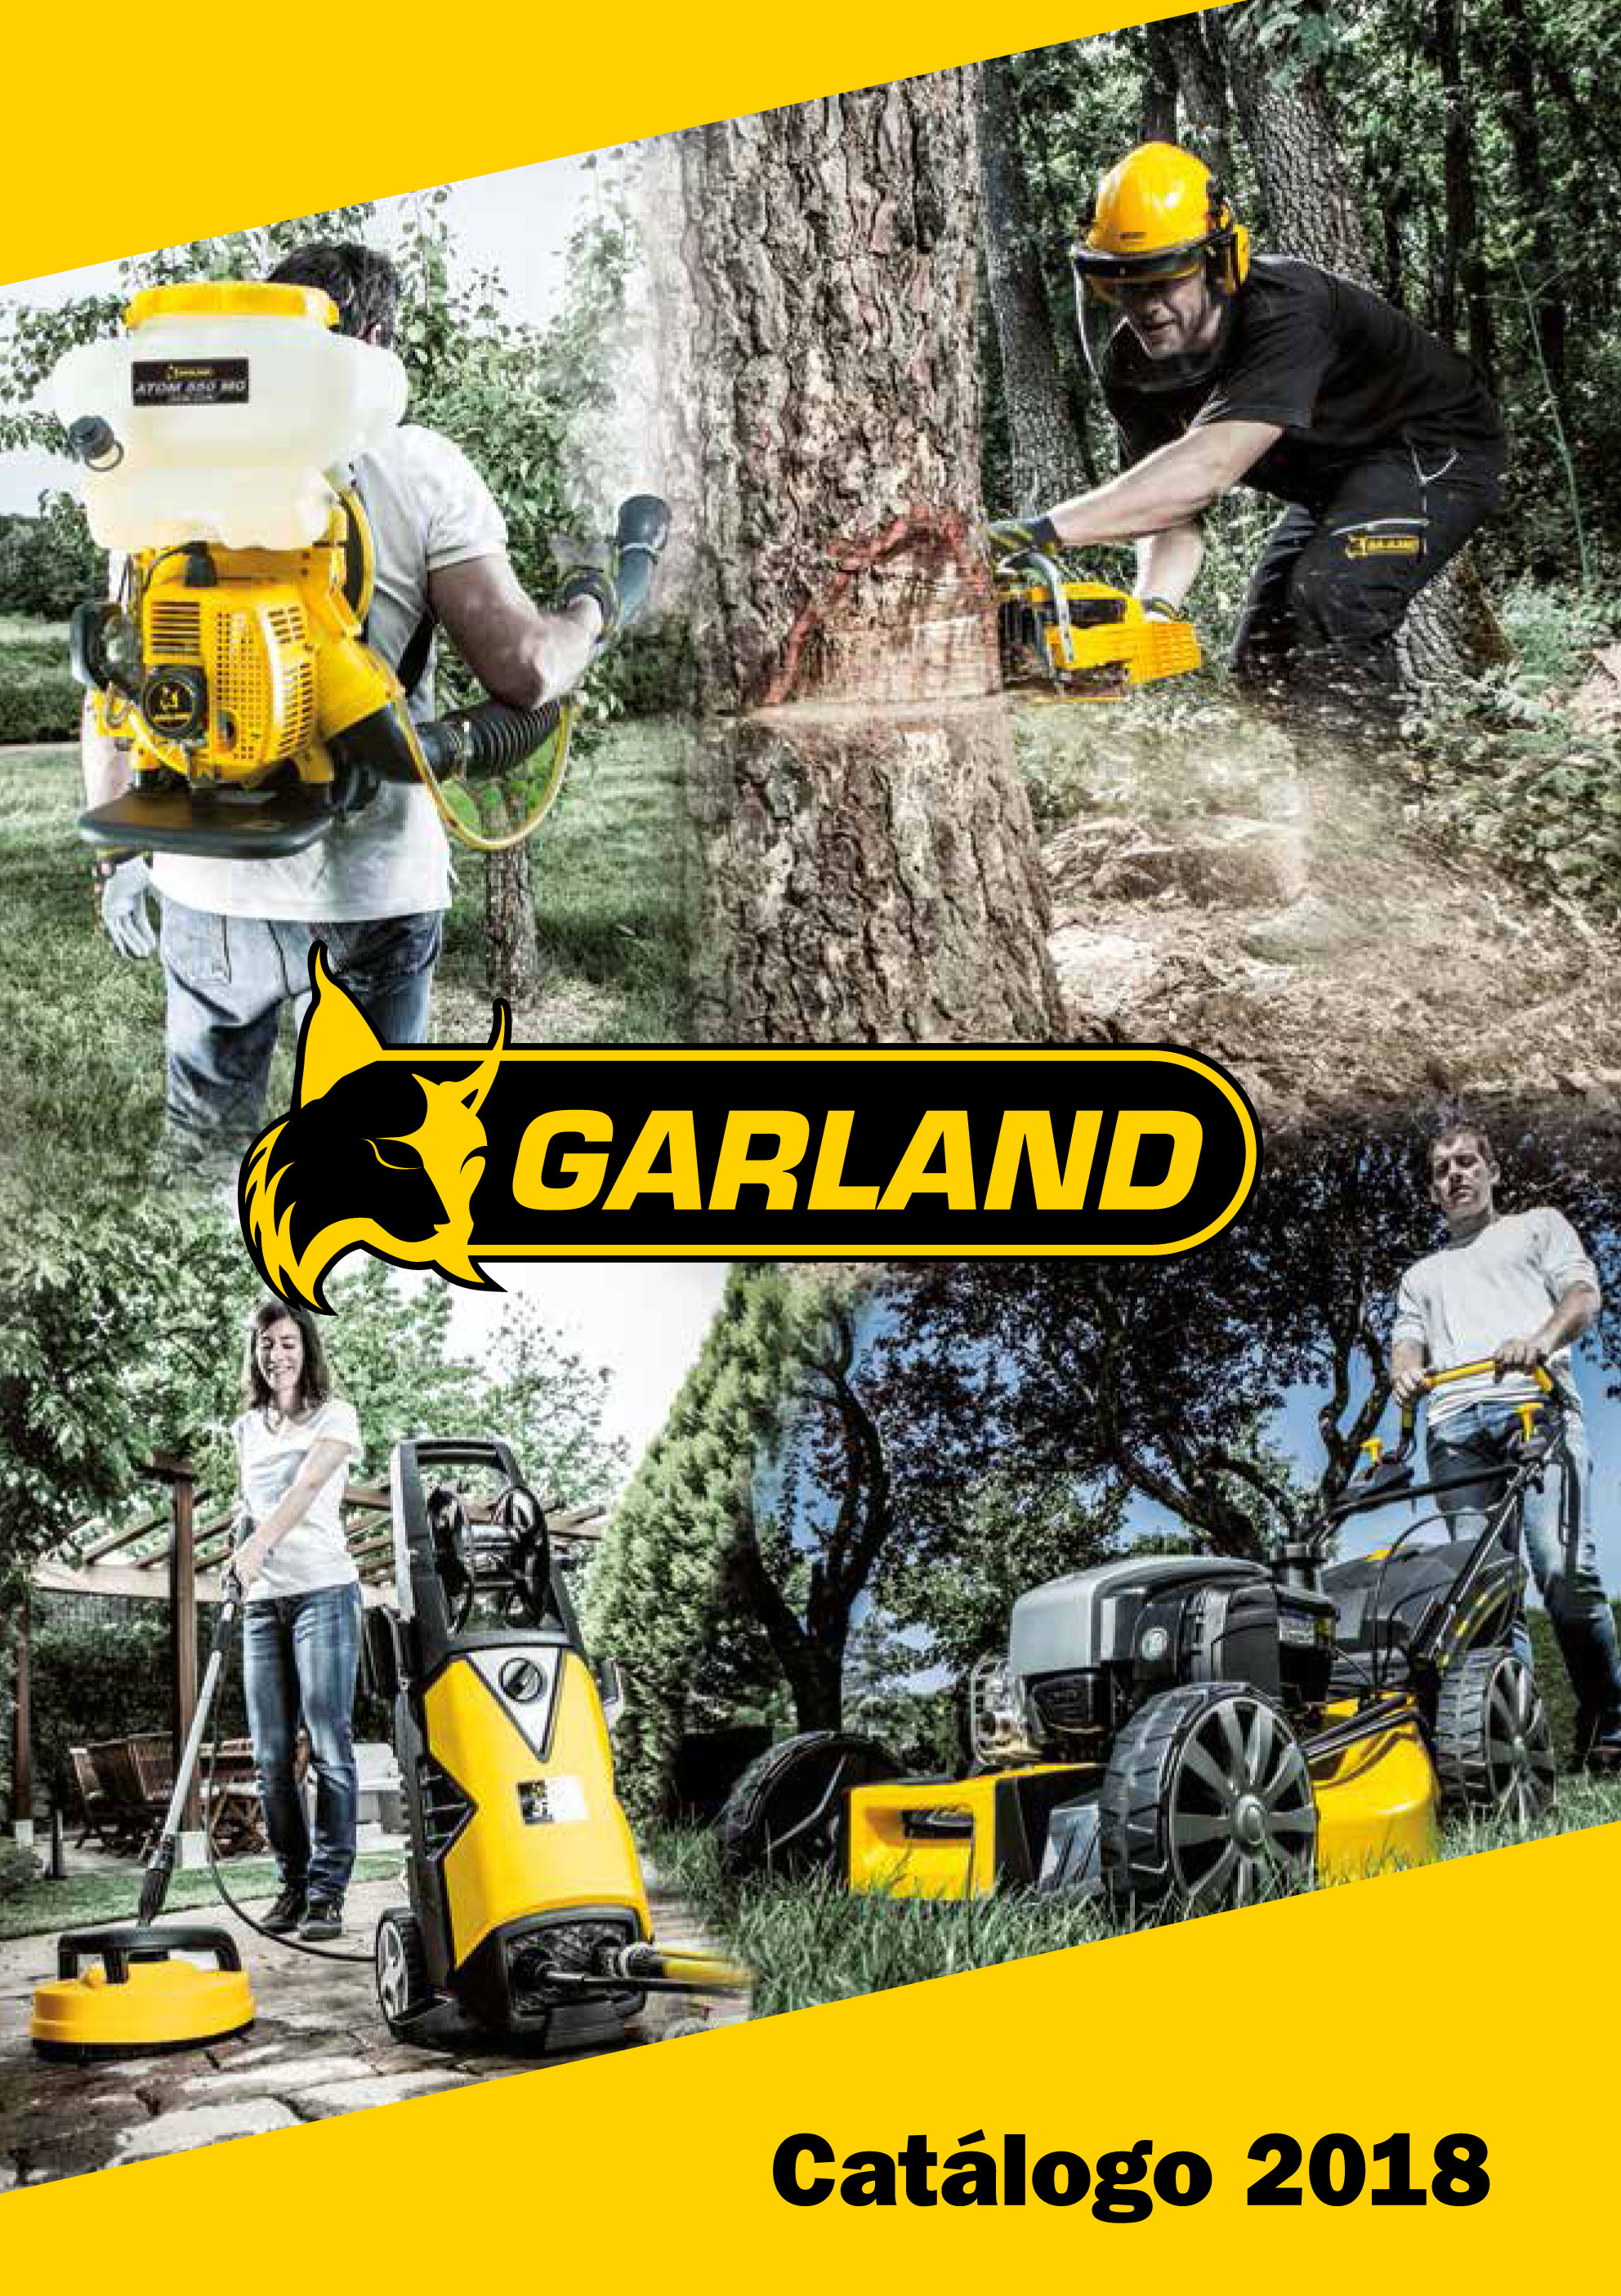 Garland catalogo 2018